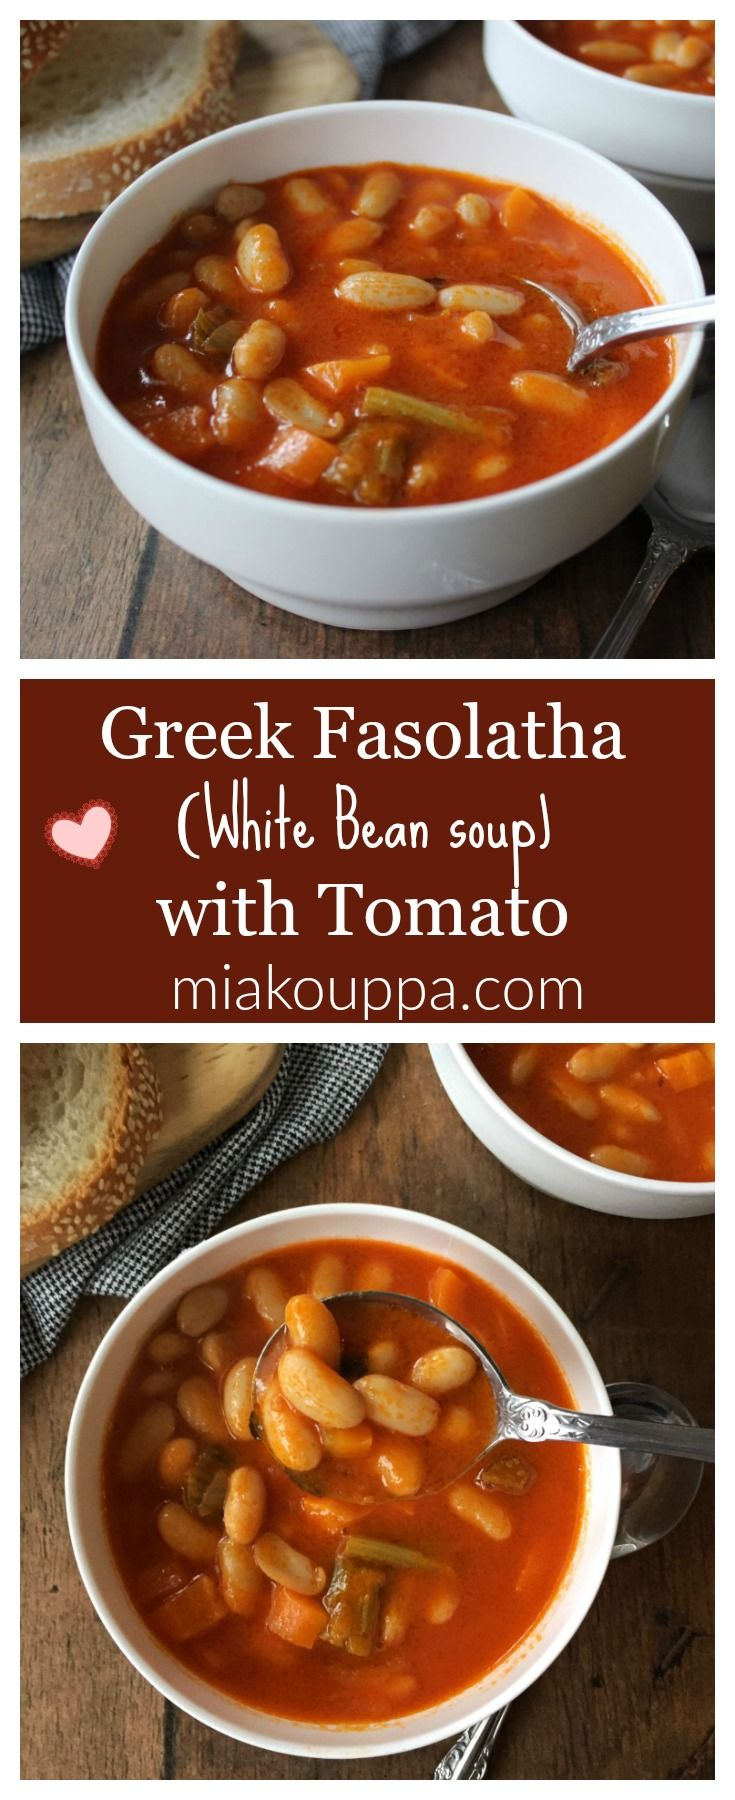 Fasolatha with tomato try this greek soup healthy recipes fasolatha with tomato try this greek soup loaded with international foodethnic forumfinder Choice Image